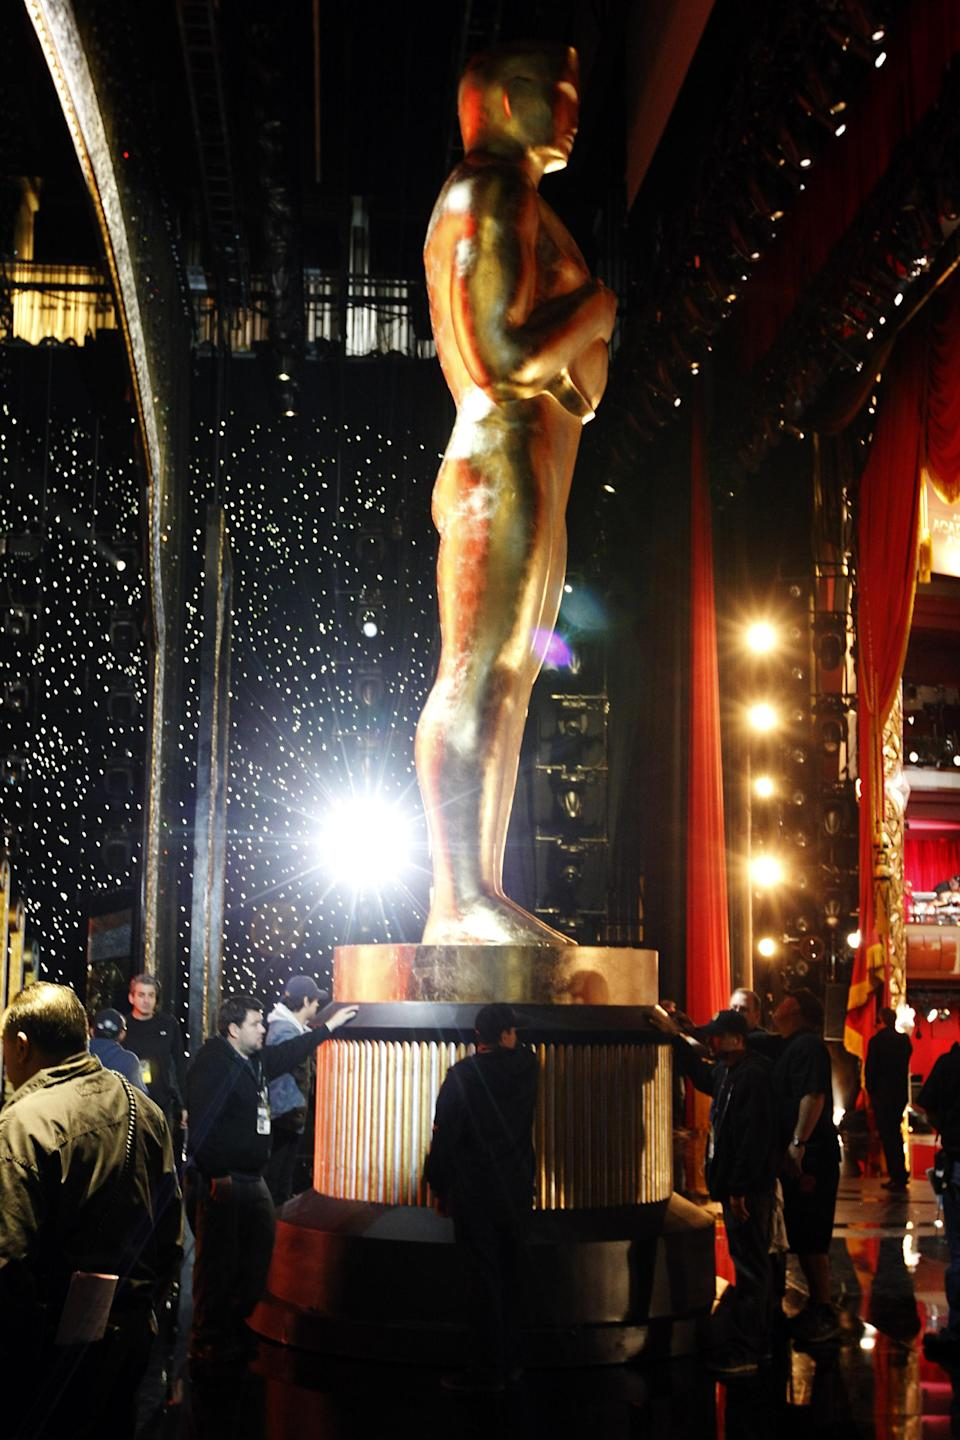 An Oscar statue is moved during rehearsals for Sunday's 84th Academy Awards, Saturday, Feb 25, 2012 in Los Angeles. (AP Photo/Chris Carlson)